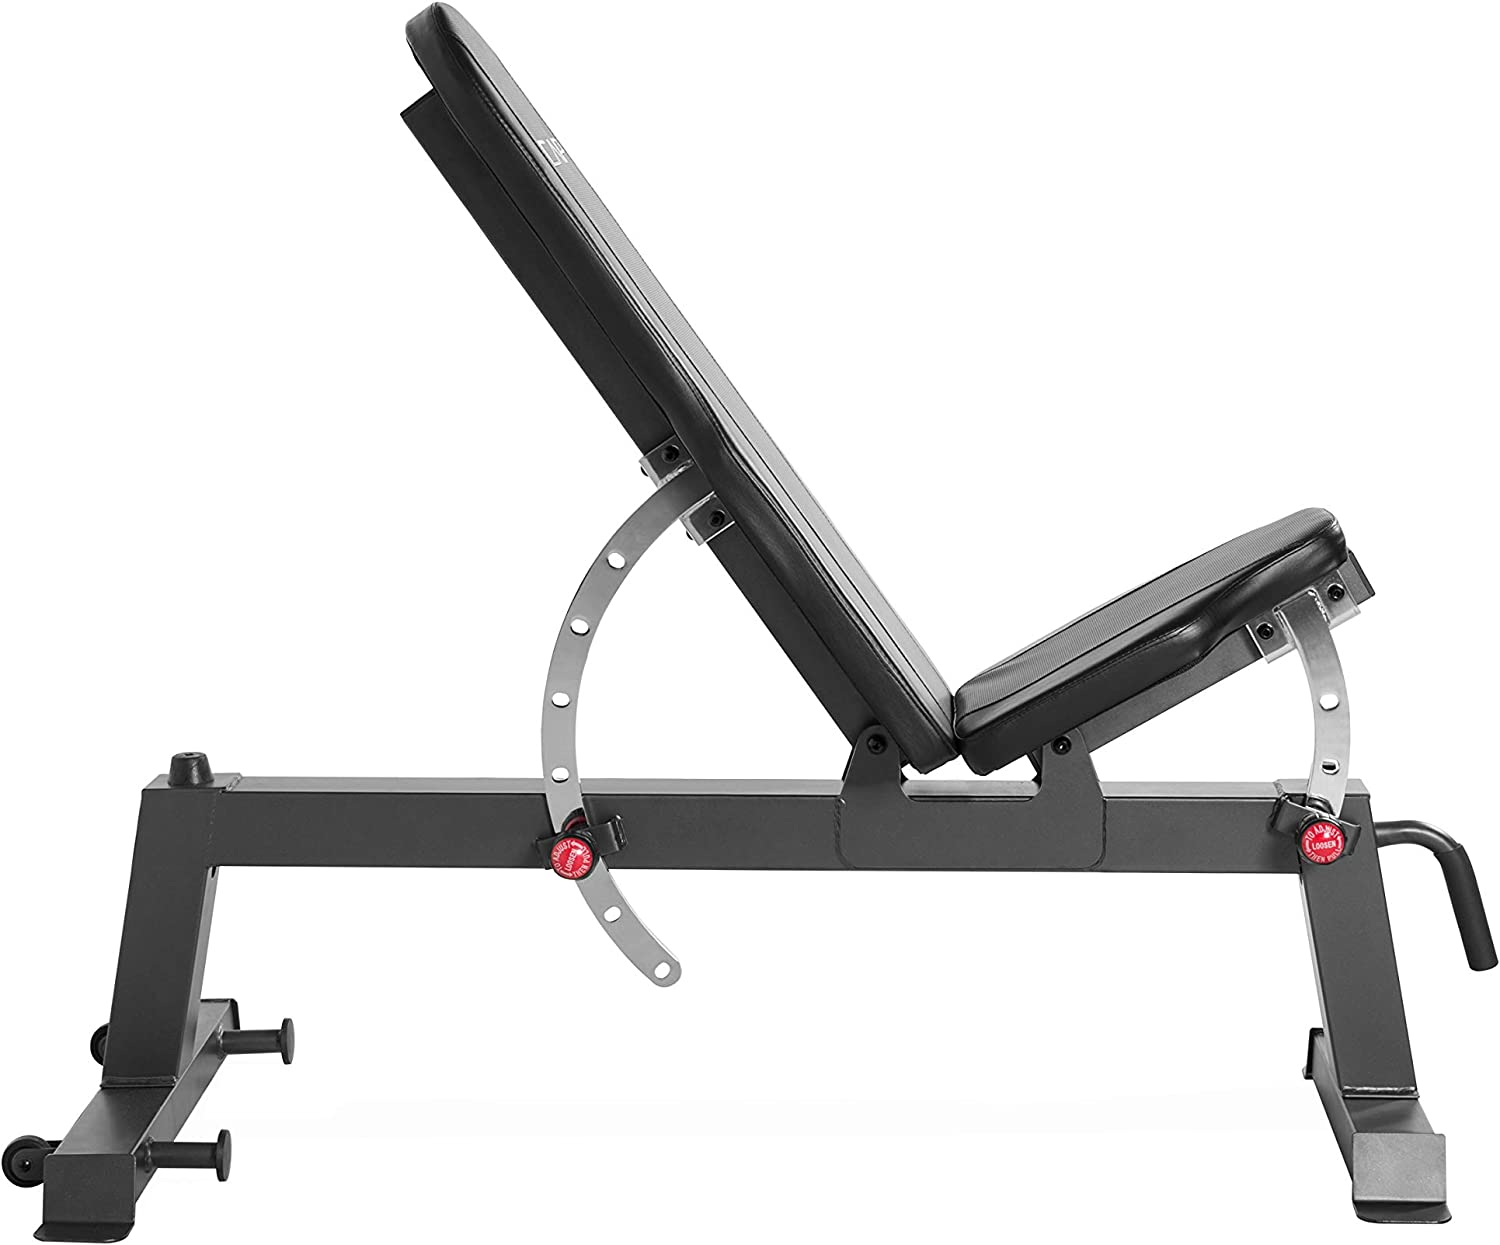 3 Seat Positions Up To 500 Lbs Details about  /CAP Barbell Deluxe Utility Weight Bench 7 Back